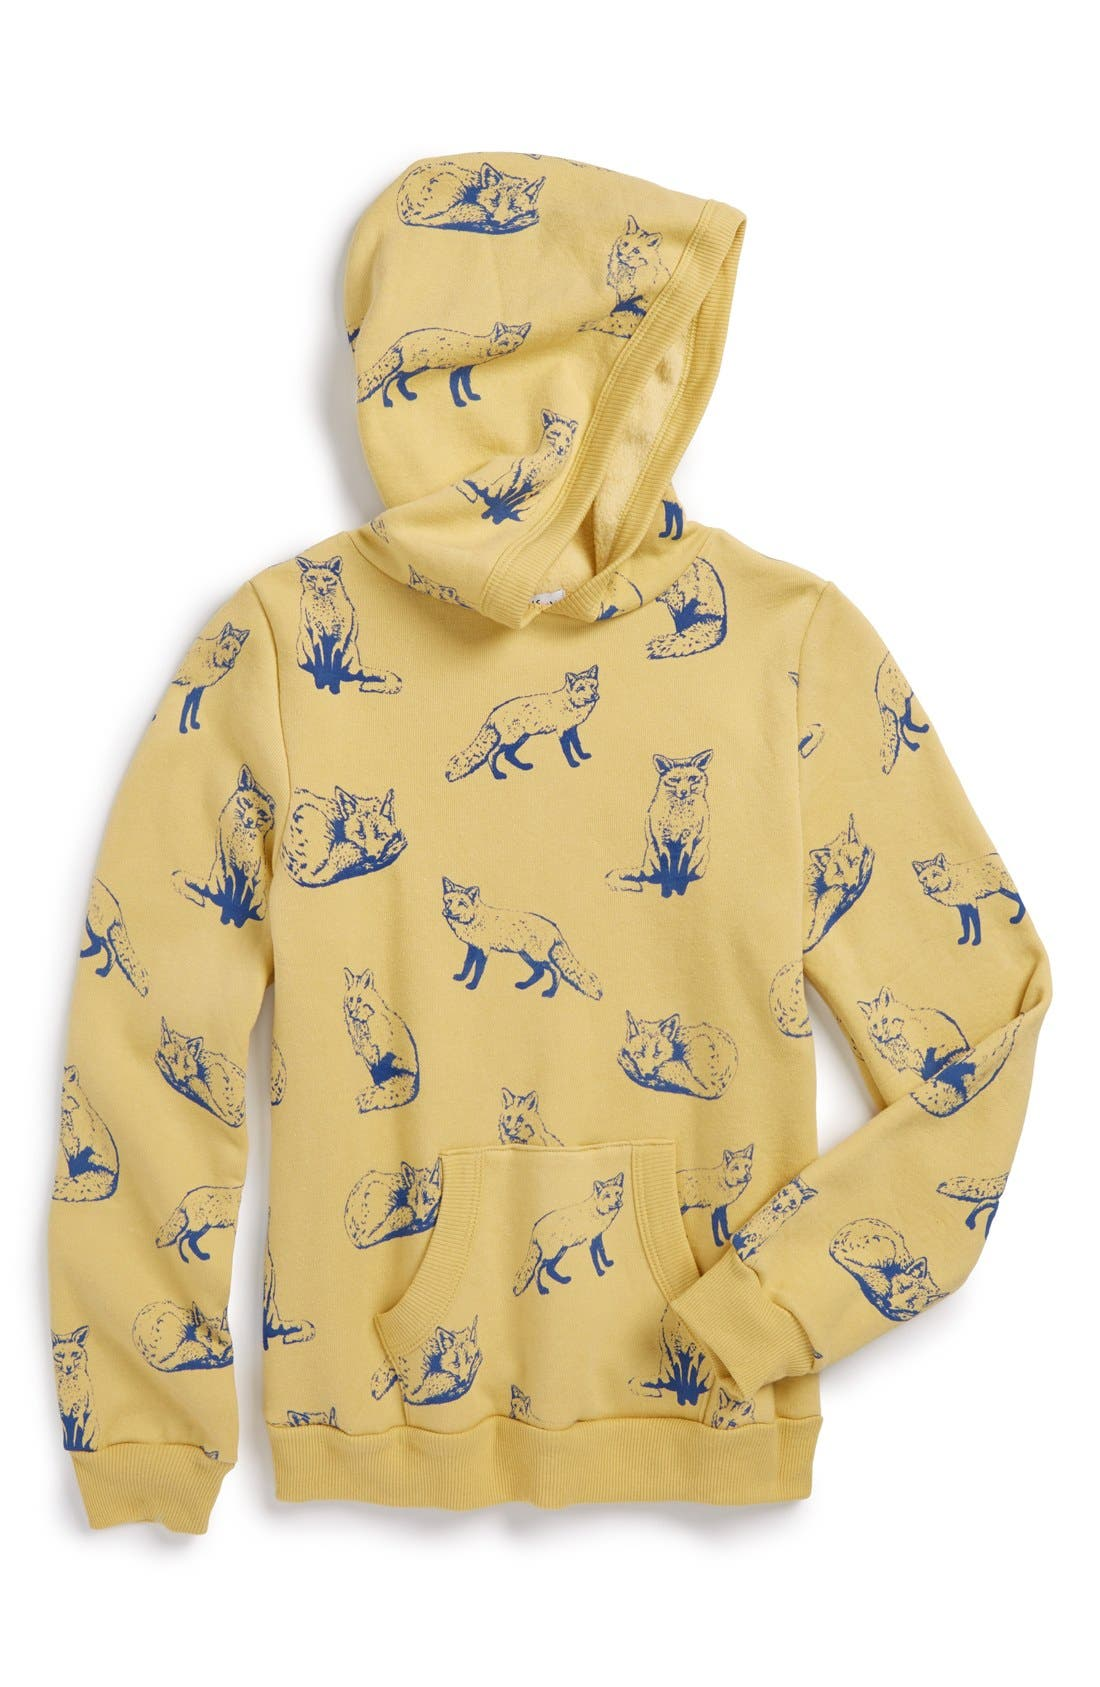 Alternate Image 1 Selected - Wildfox 'Fox Toile' Graphic Hoodie (Big Girls)